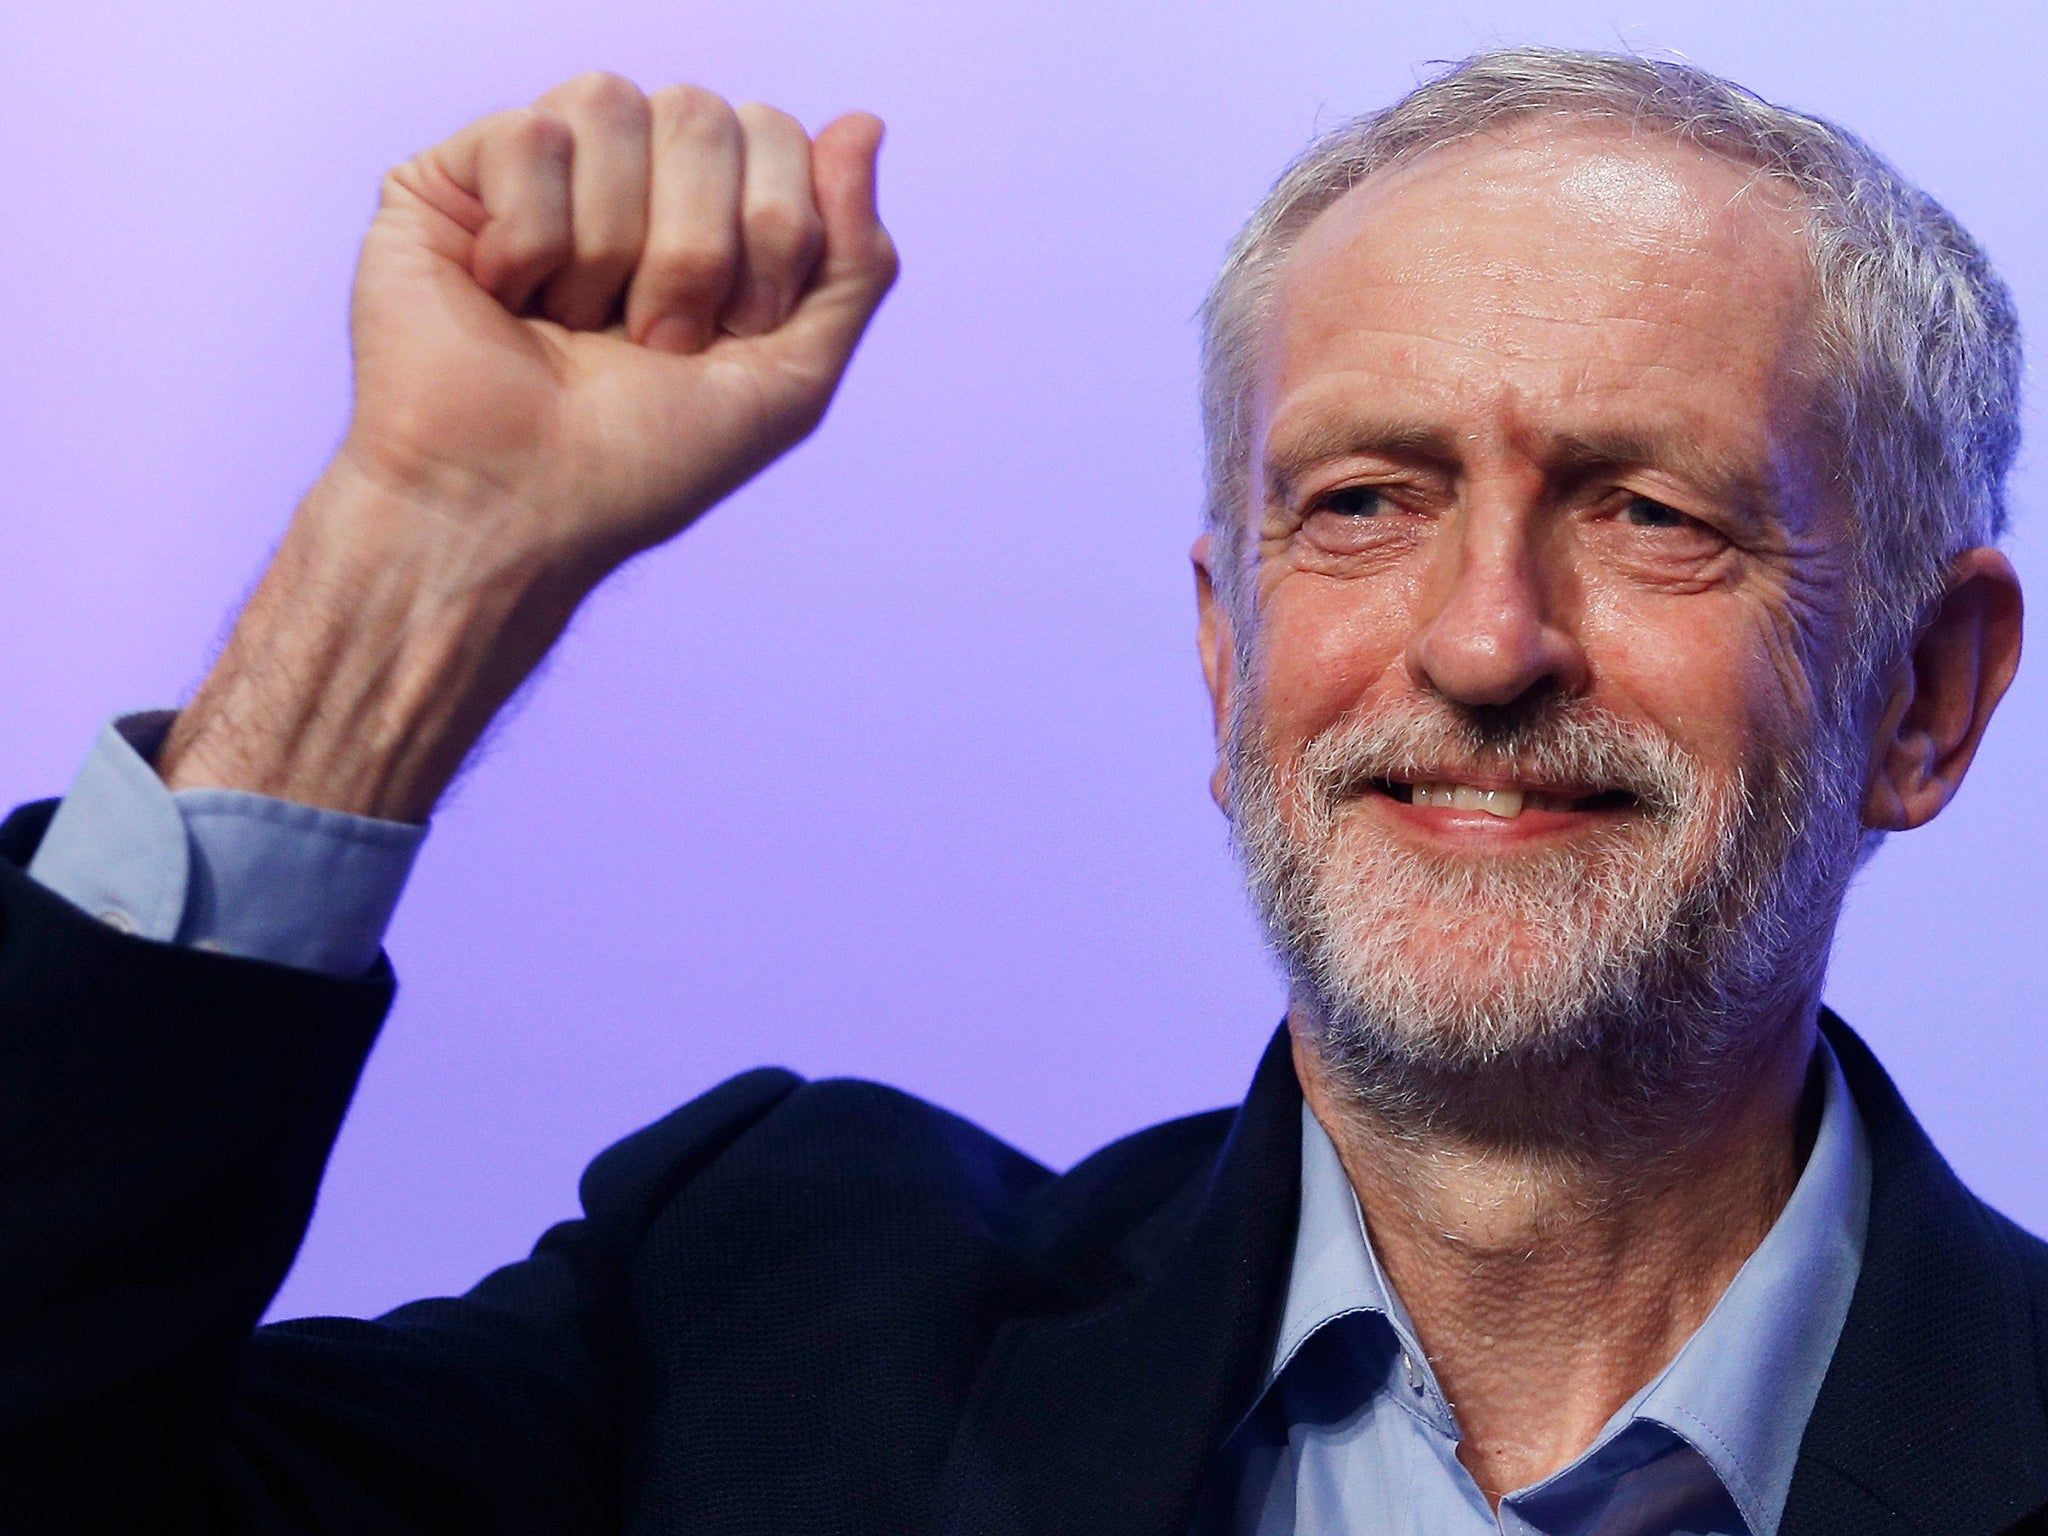 Jeremy corbyn to challenge chinese president xi jinping on human rights in one on one meeting the independent